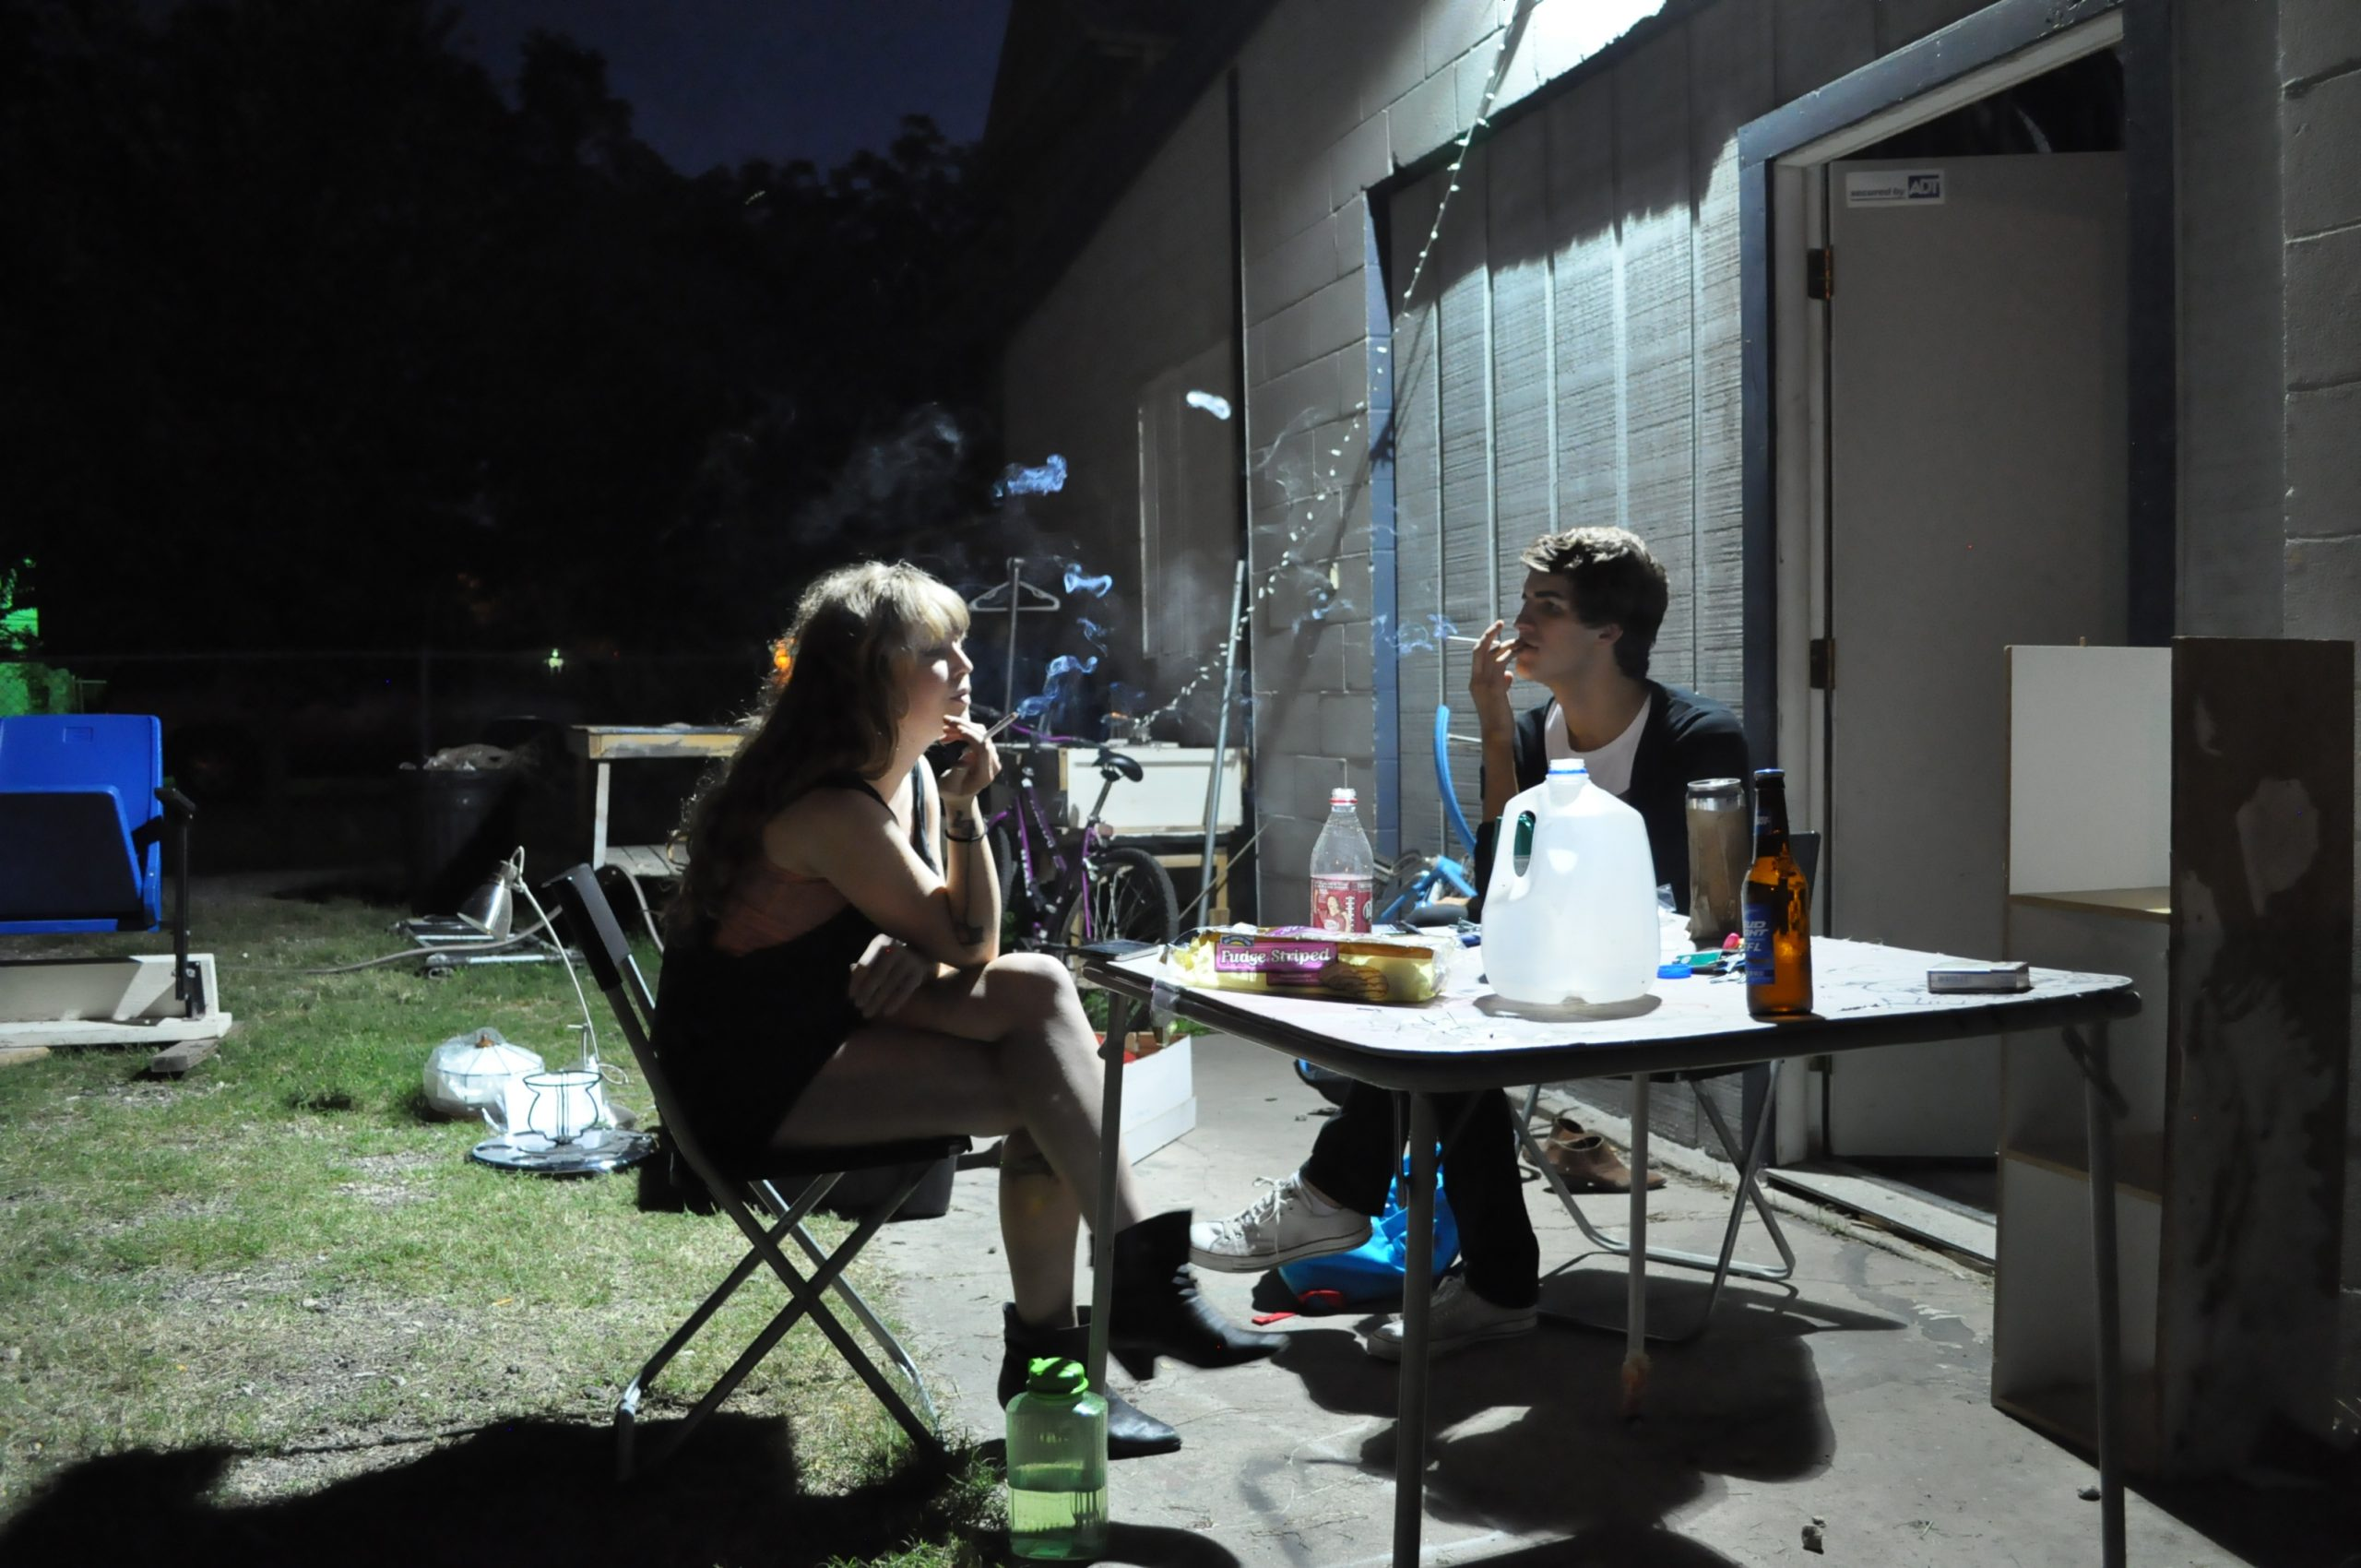 Actors discussing a scene during a smoke break. Photo by Jacob Coltrane Burris.